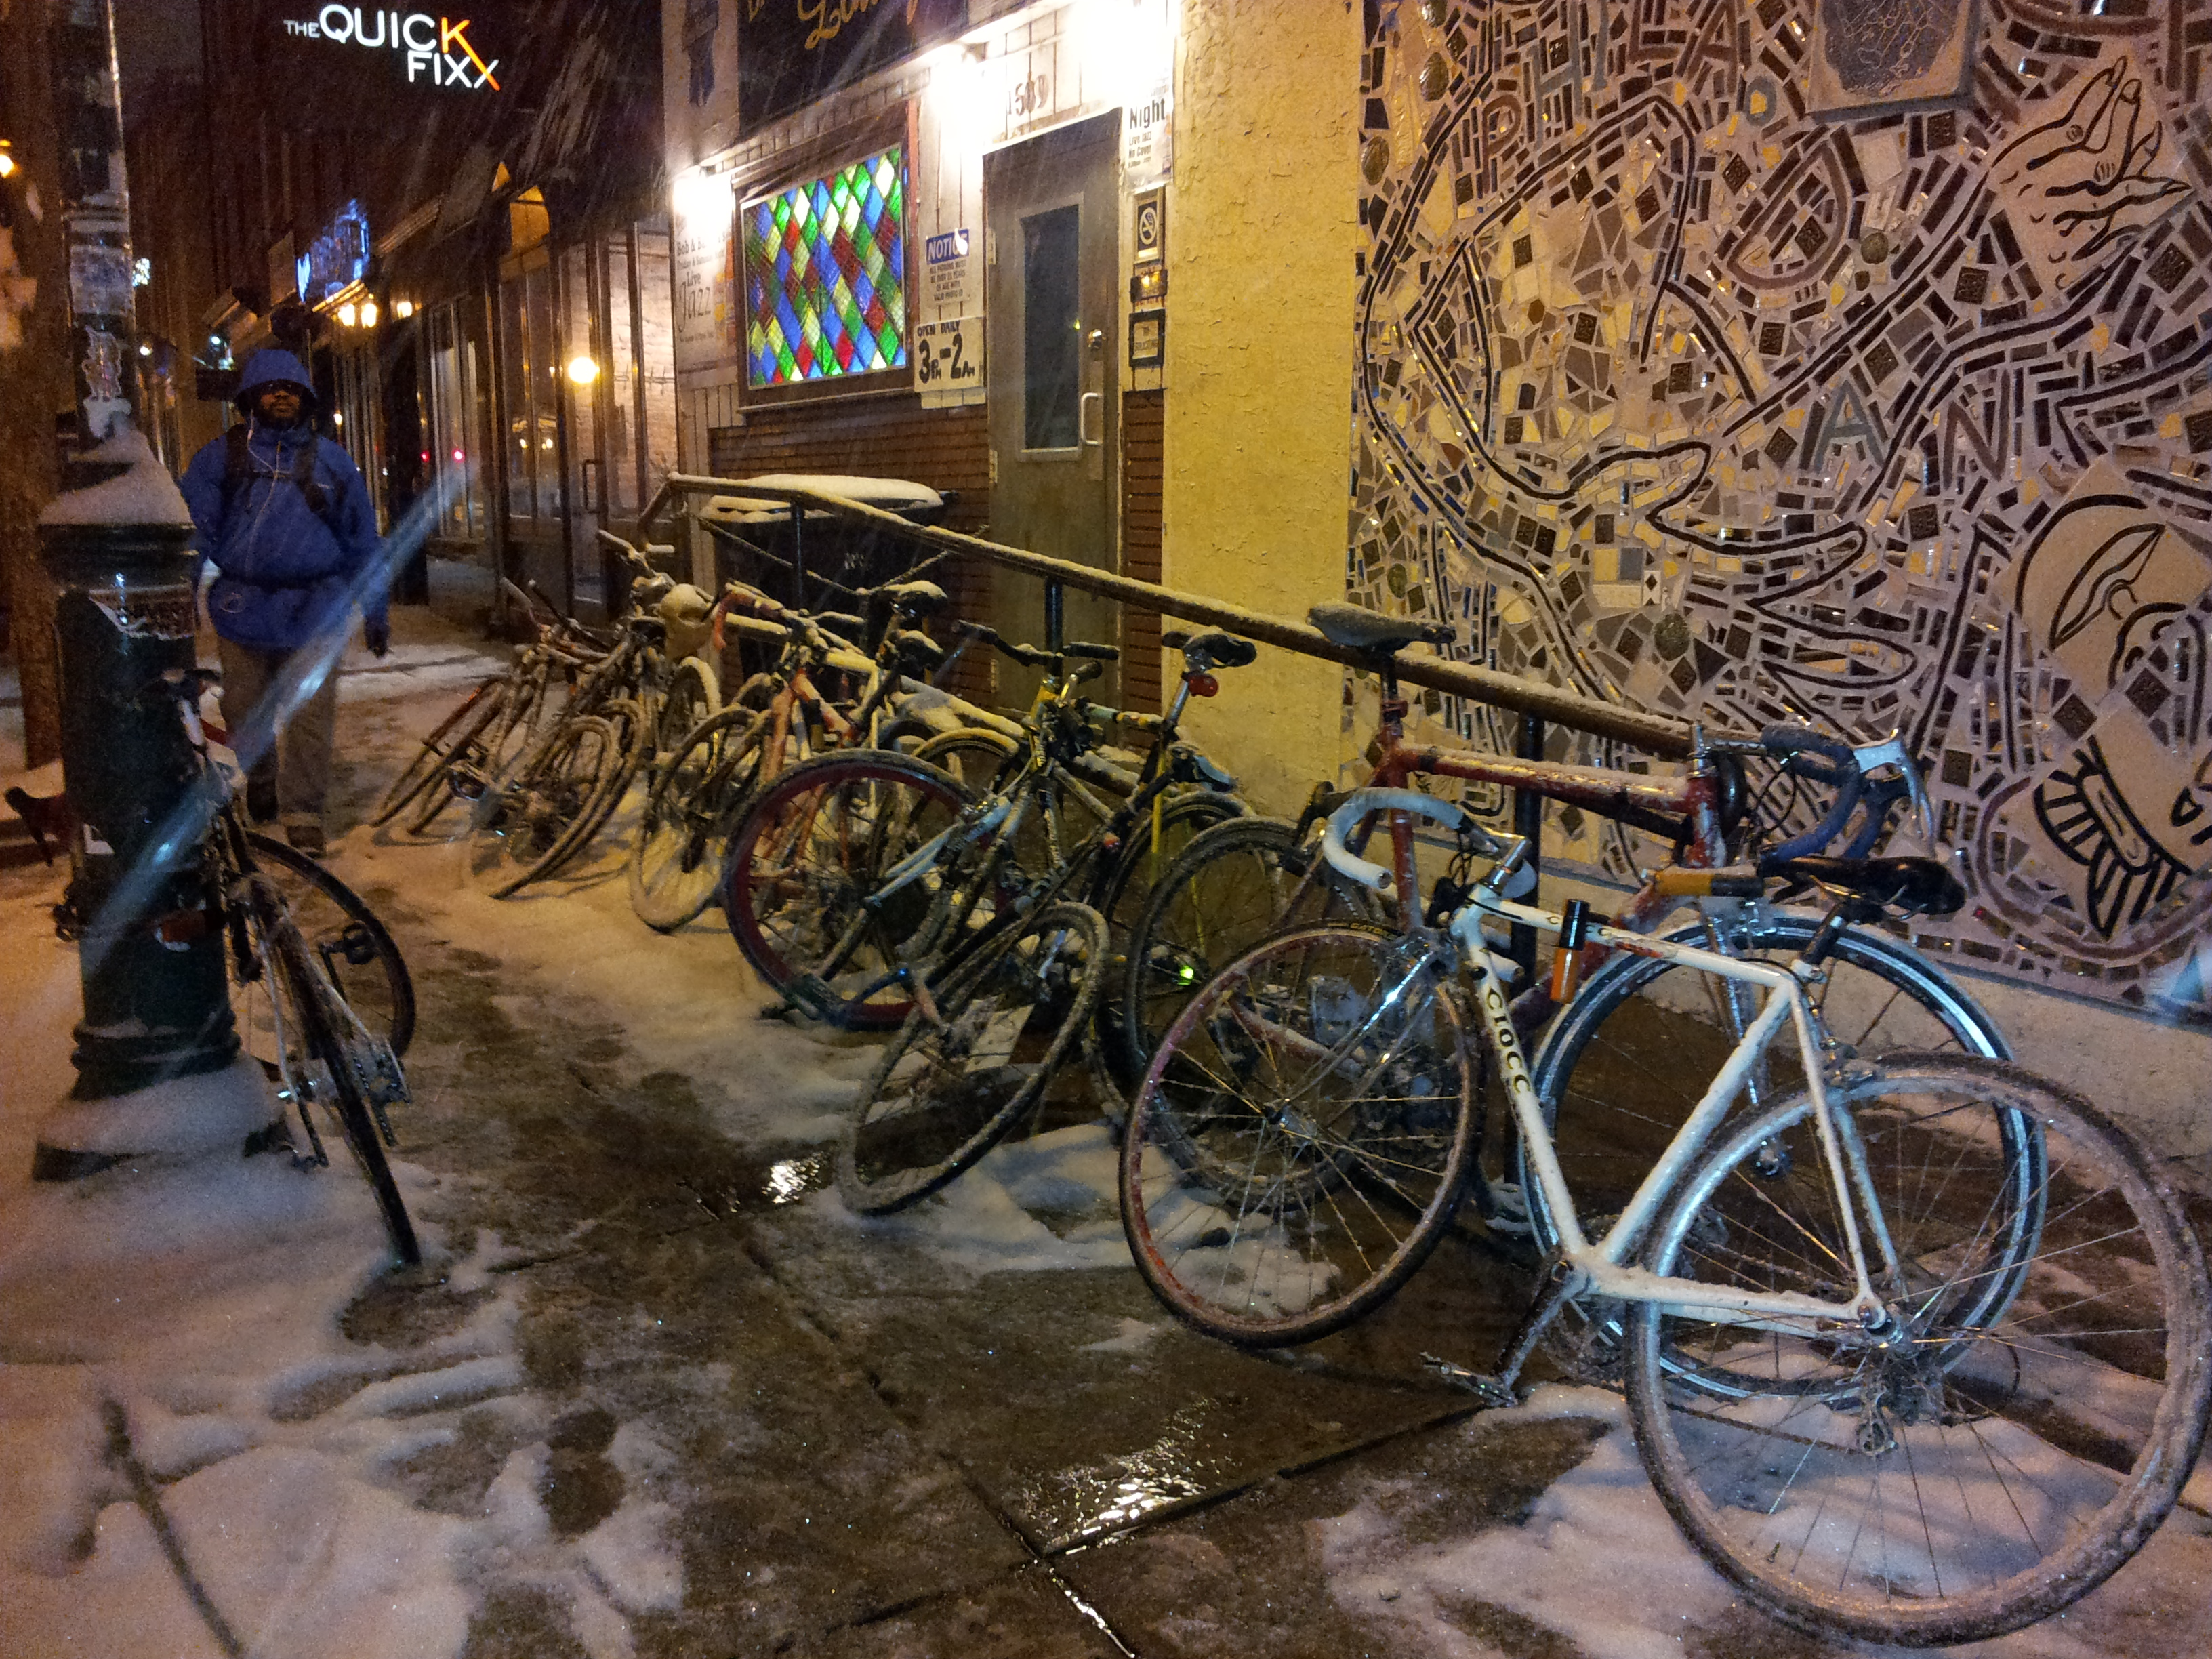 Bike pile up on B&B's ramp in the snow, 2013 | Marcus Ferreira